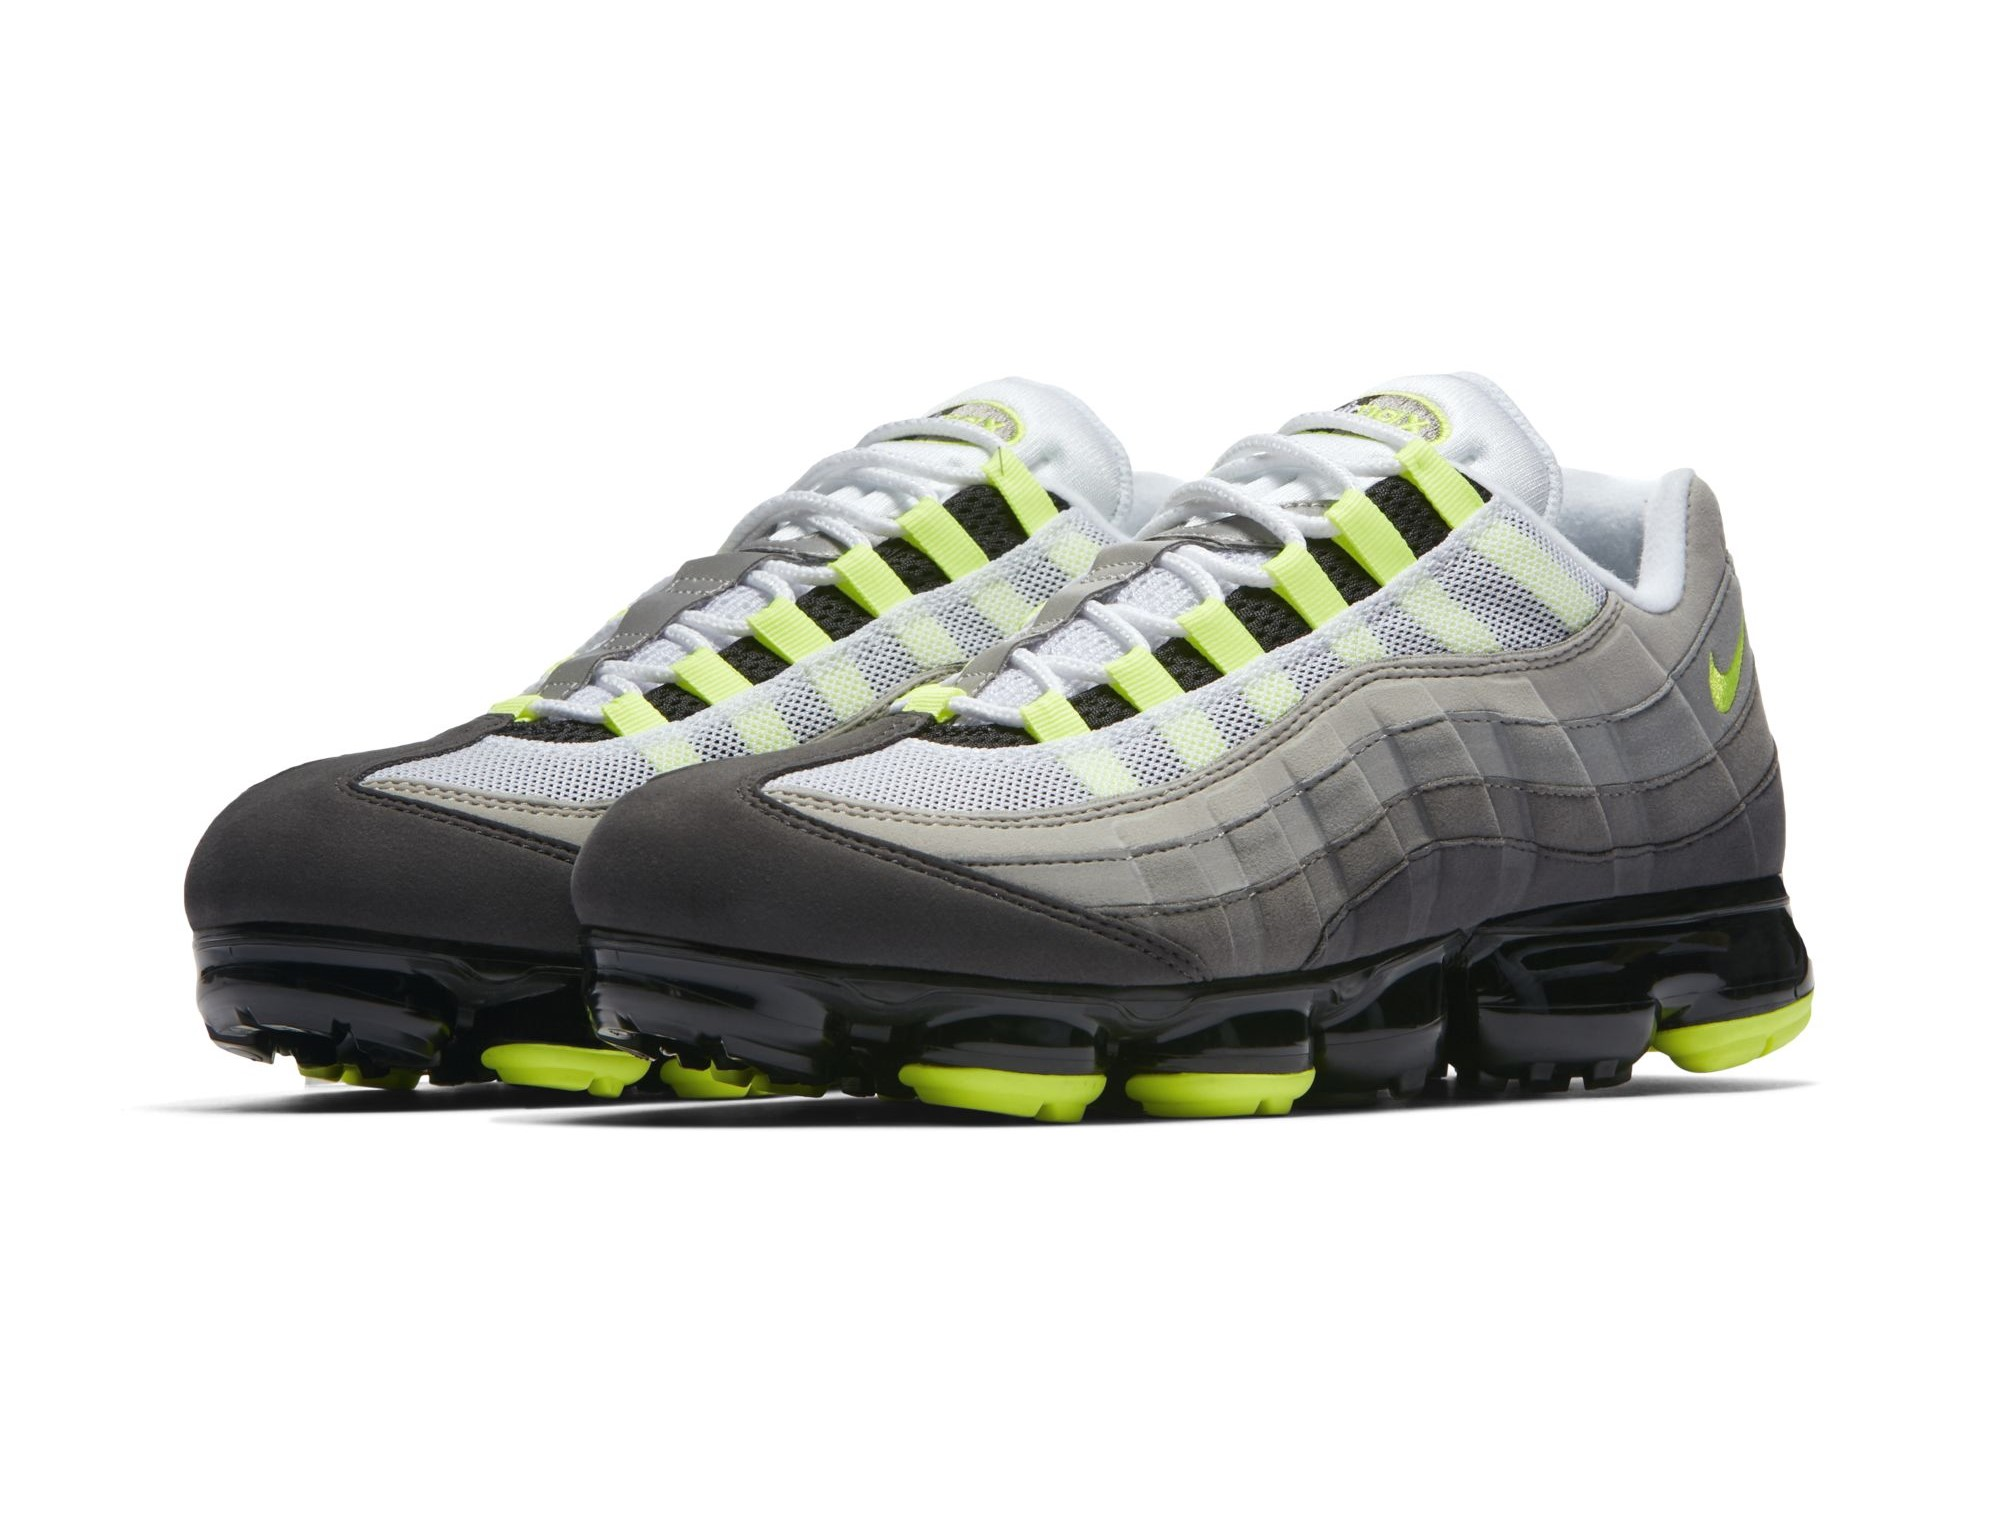 The Air Max 95 'Neon' Has Been VaporMaxed - WearTesters